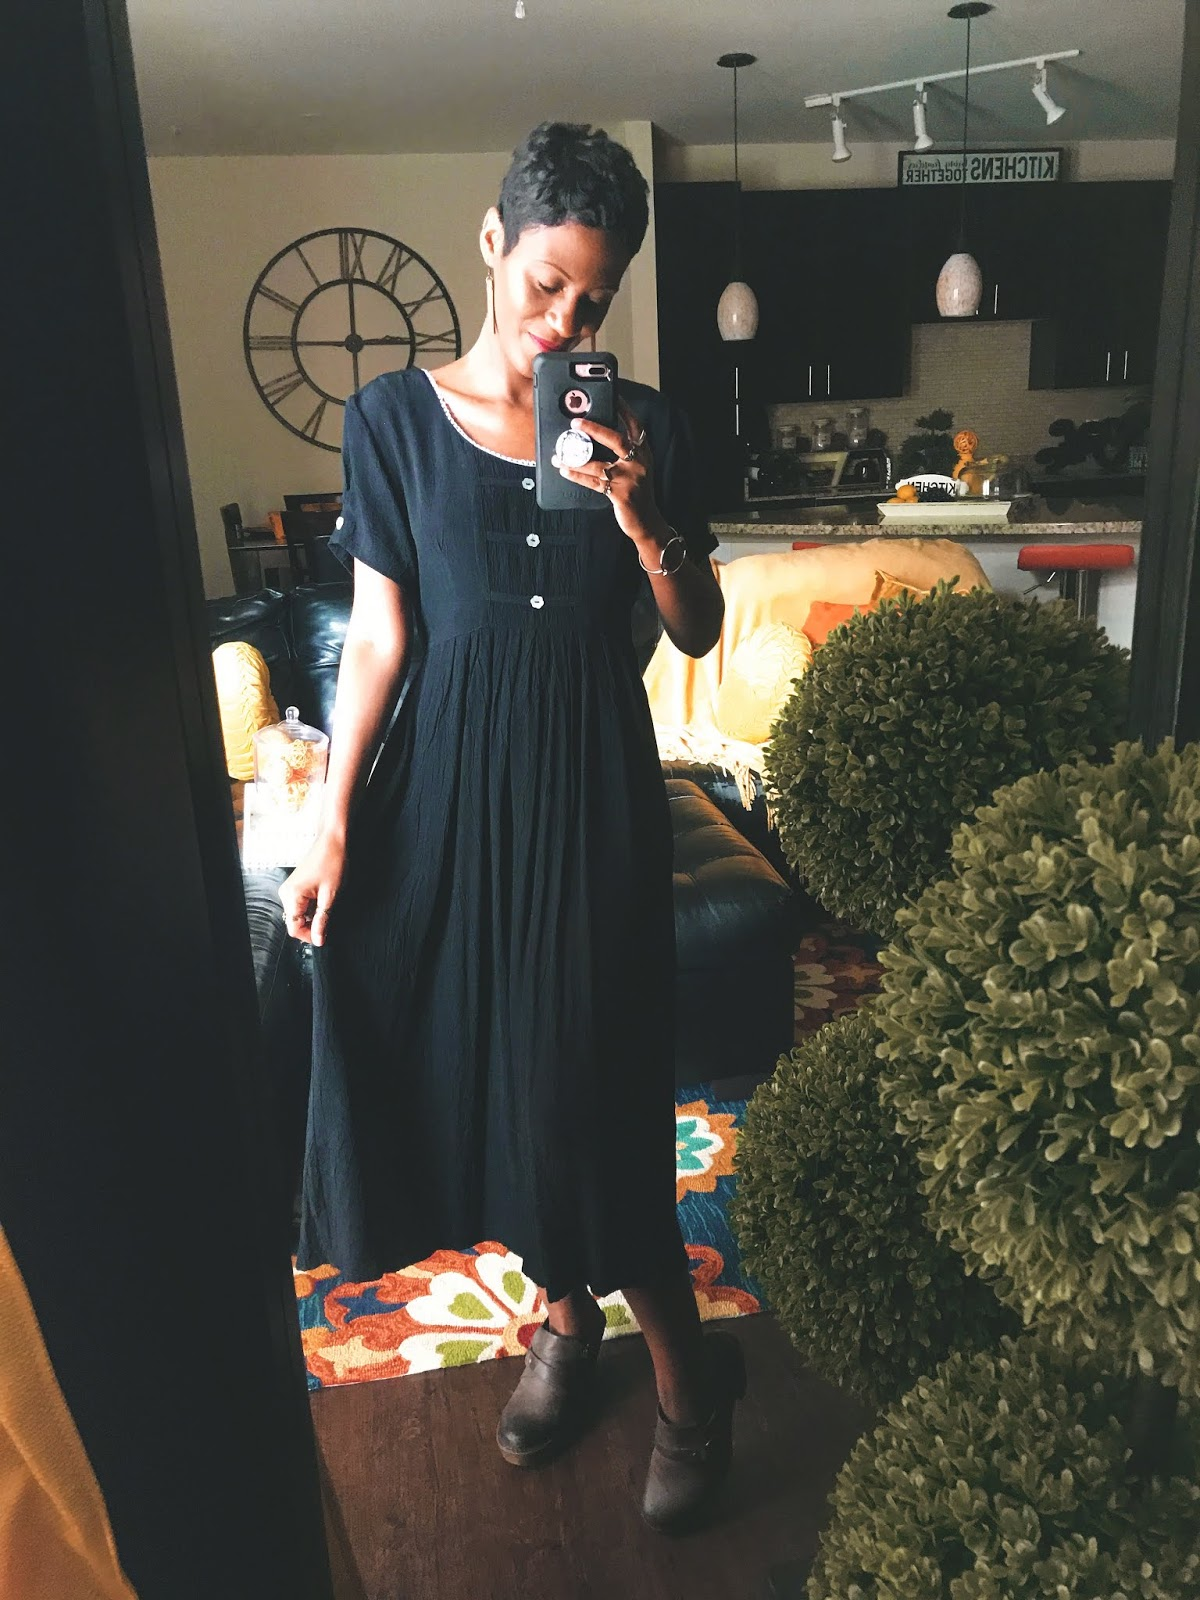 All Black Feels VERY Befitting For The Occasion